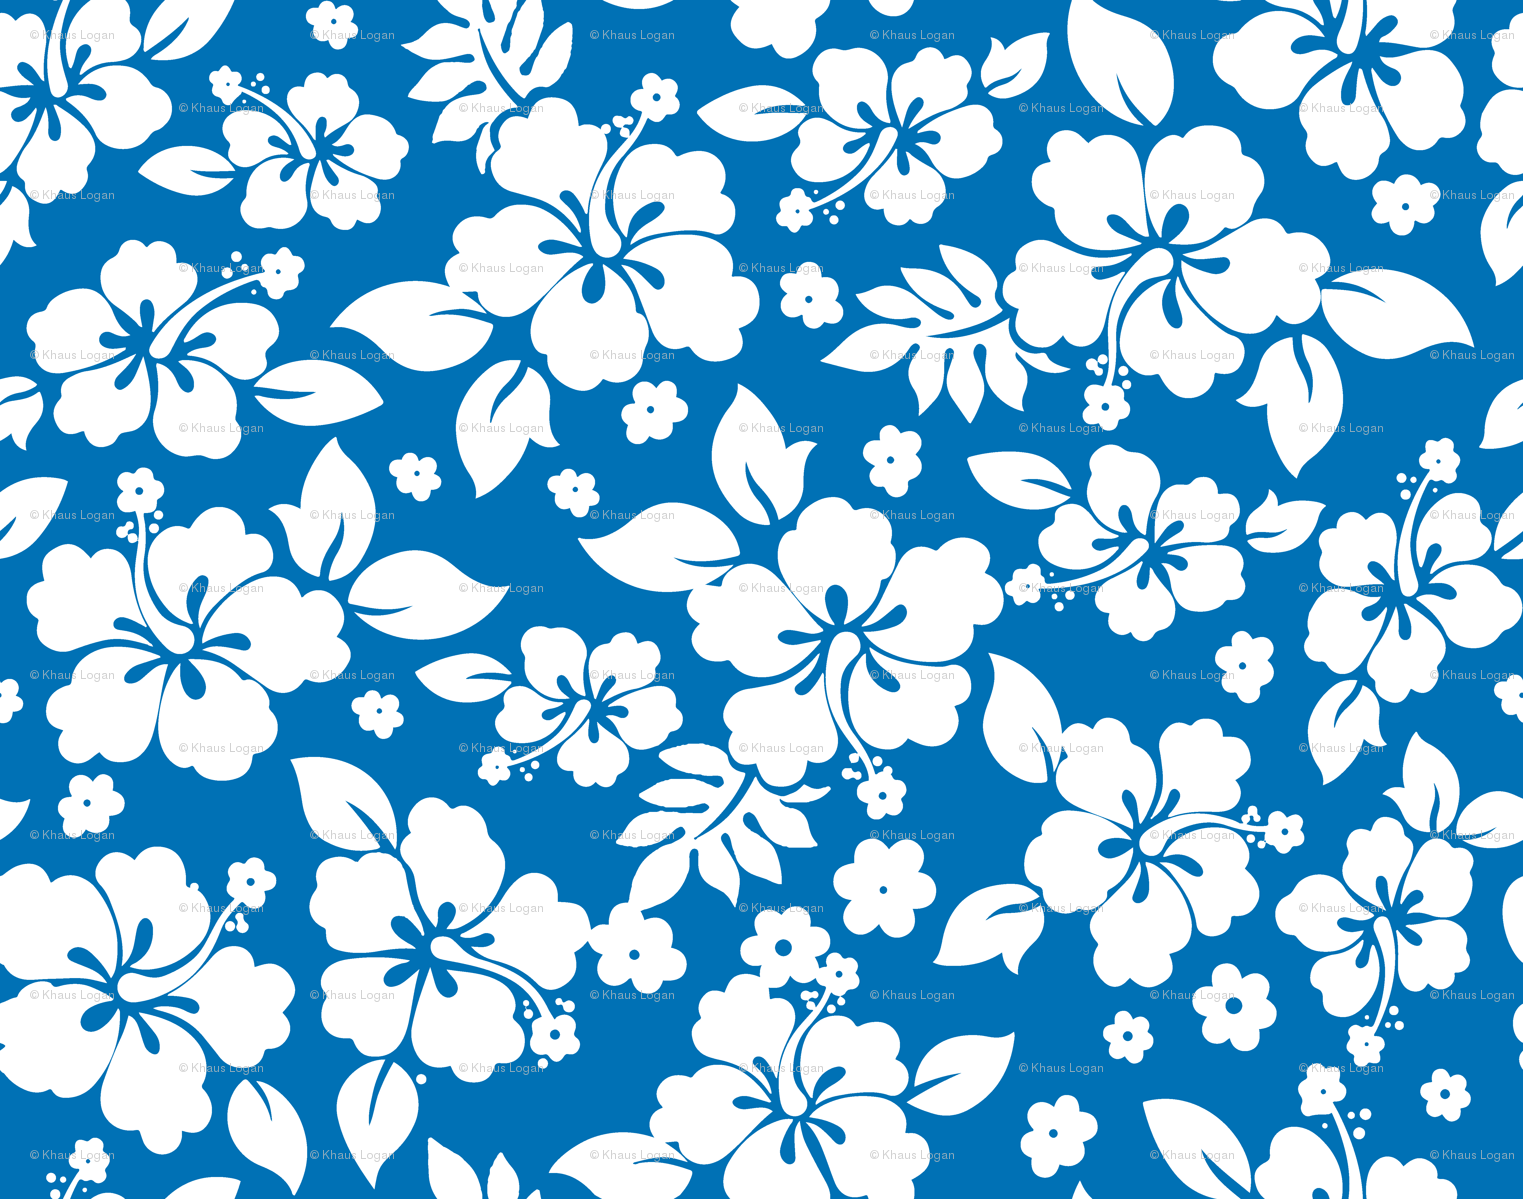 Hawaiian Flower Hisbiscus Pattern Blue and White Tropical